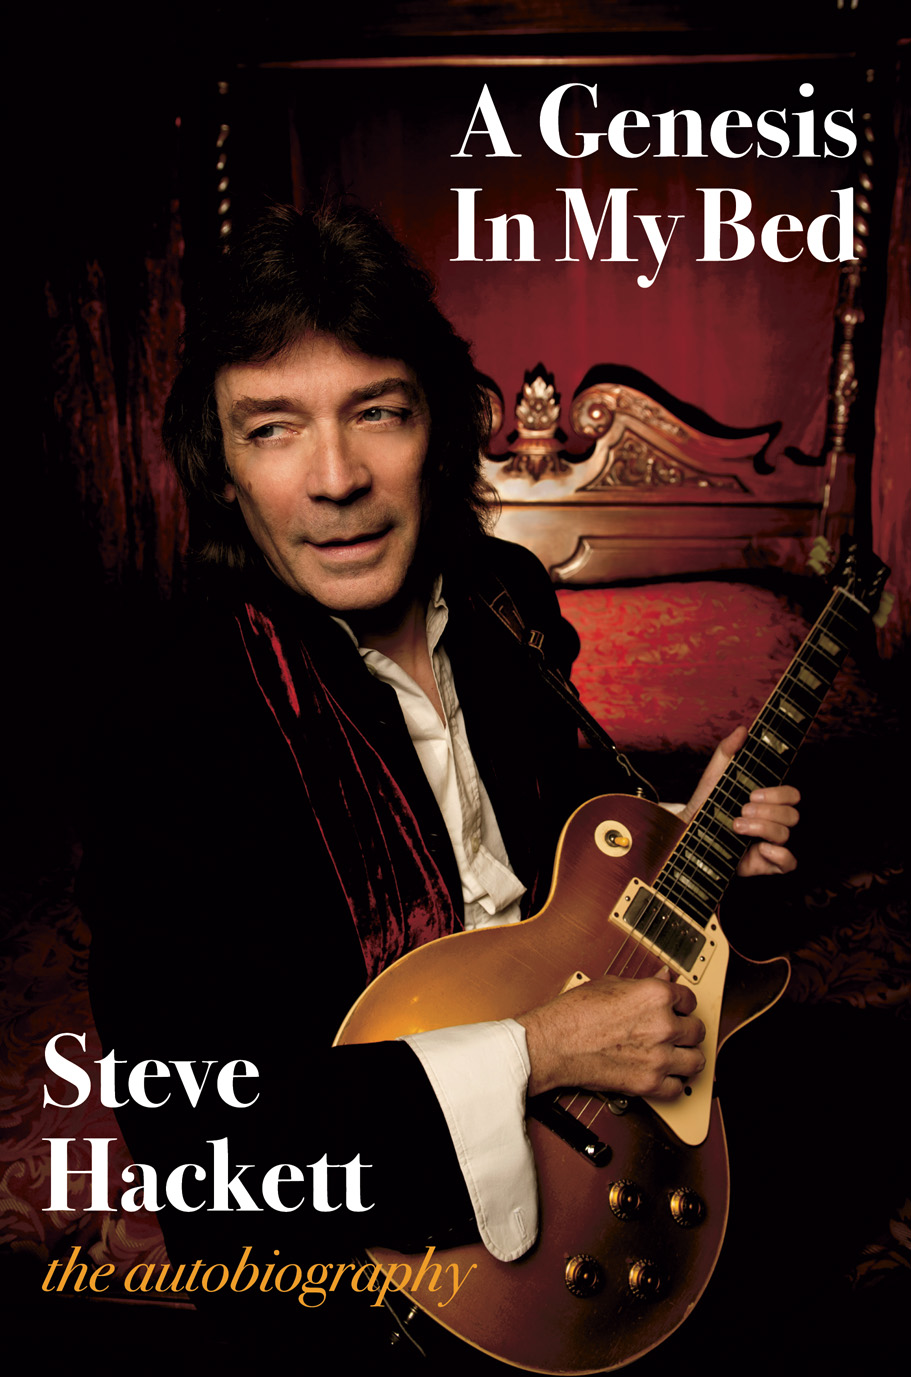 A Genesis In My Bed - Steve Hackett the autobiography